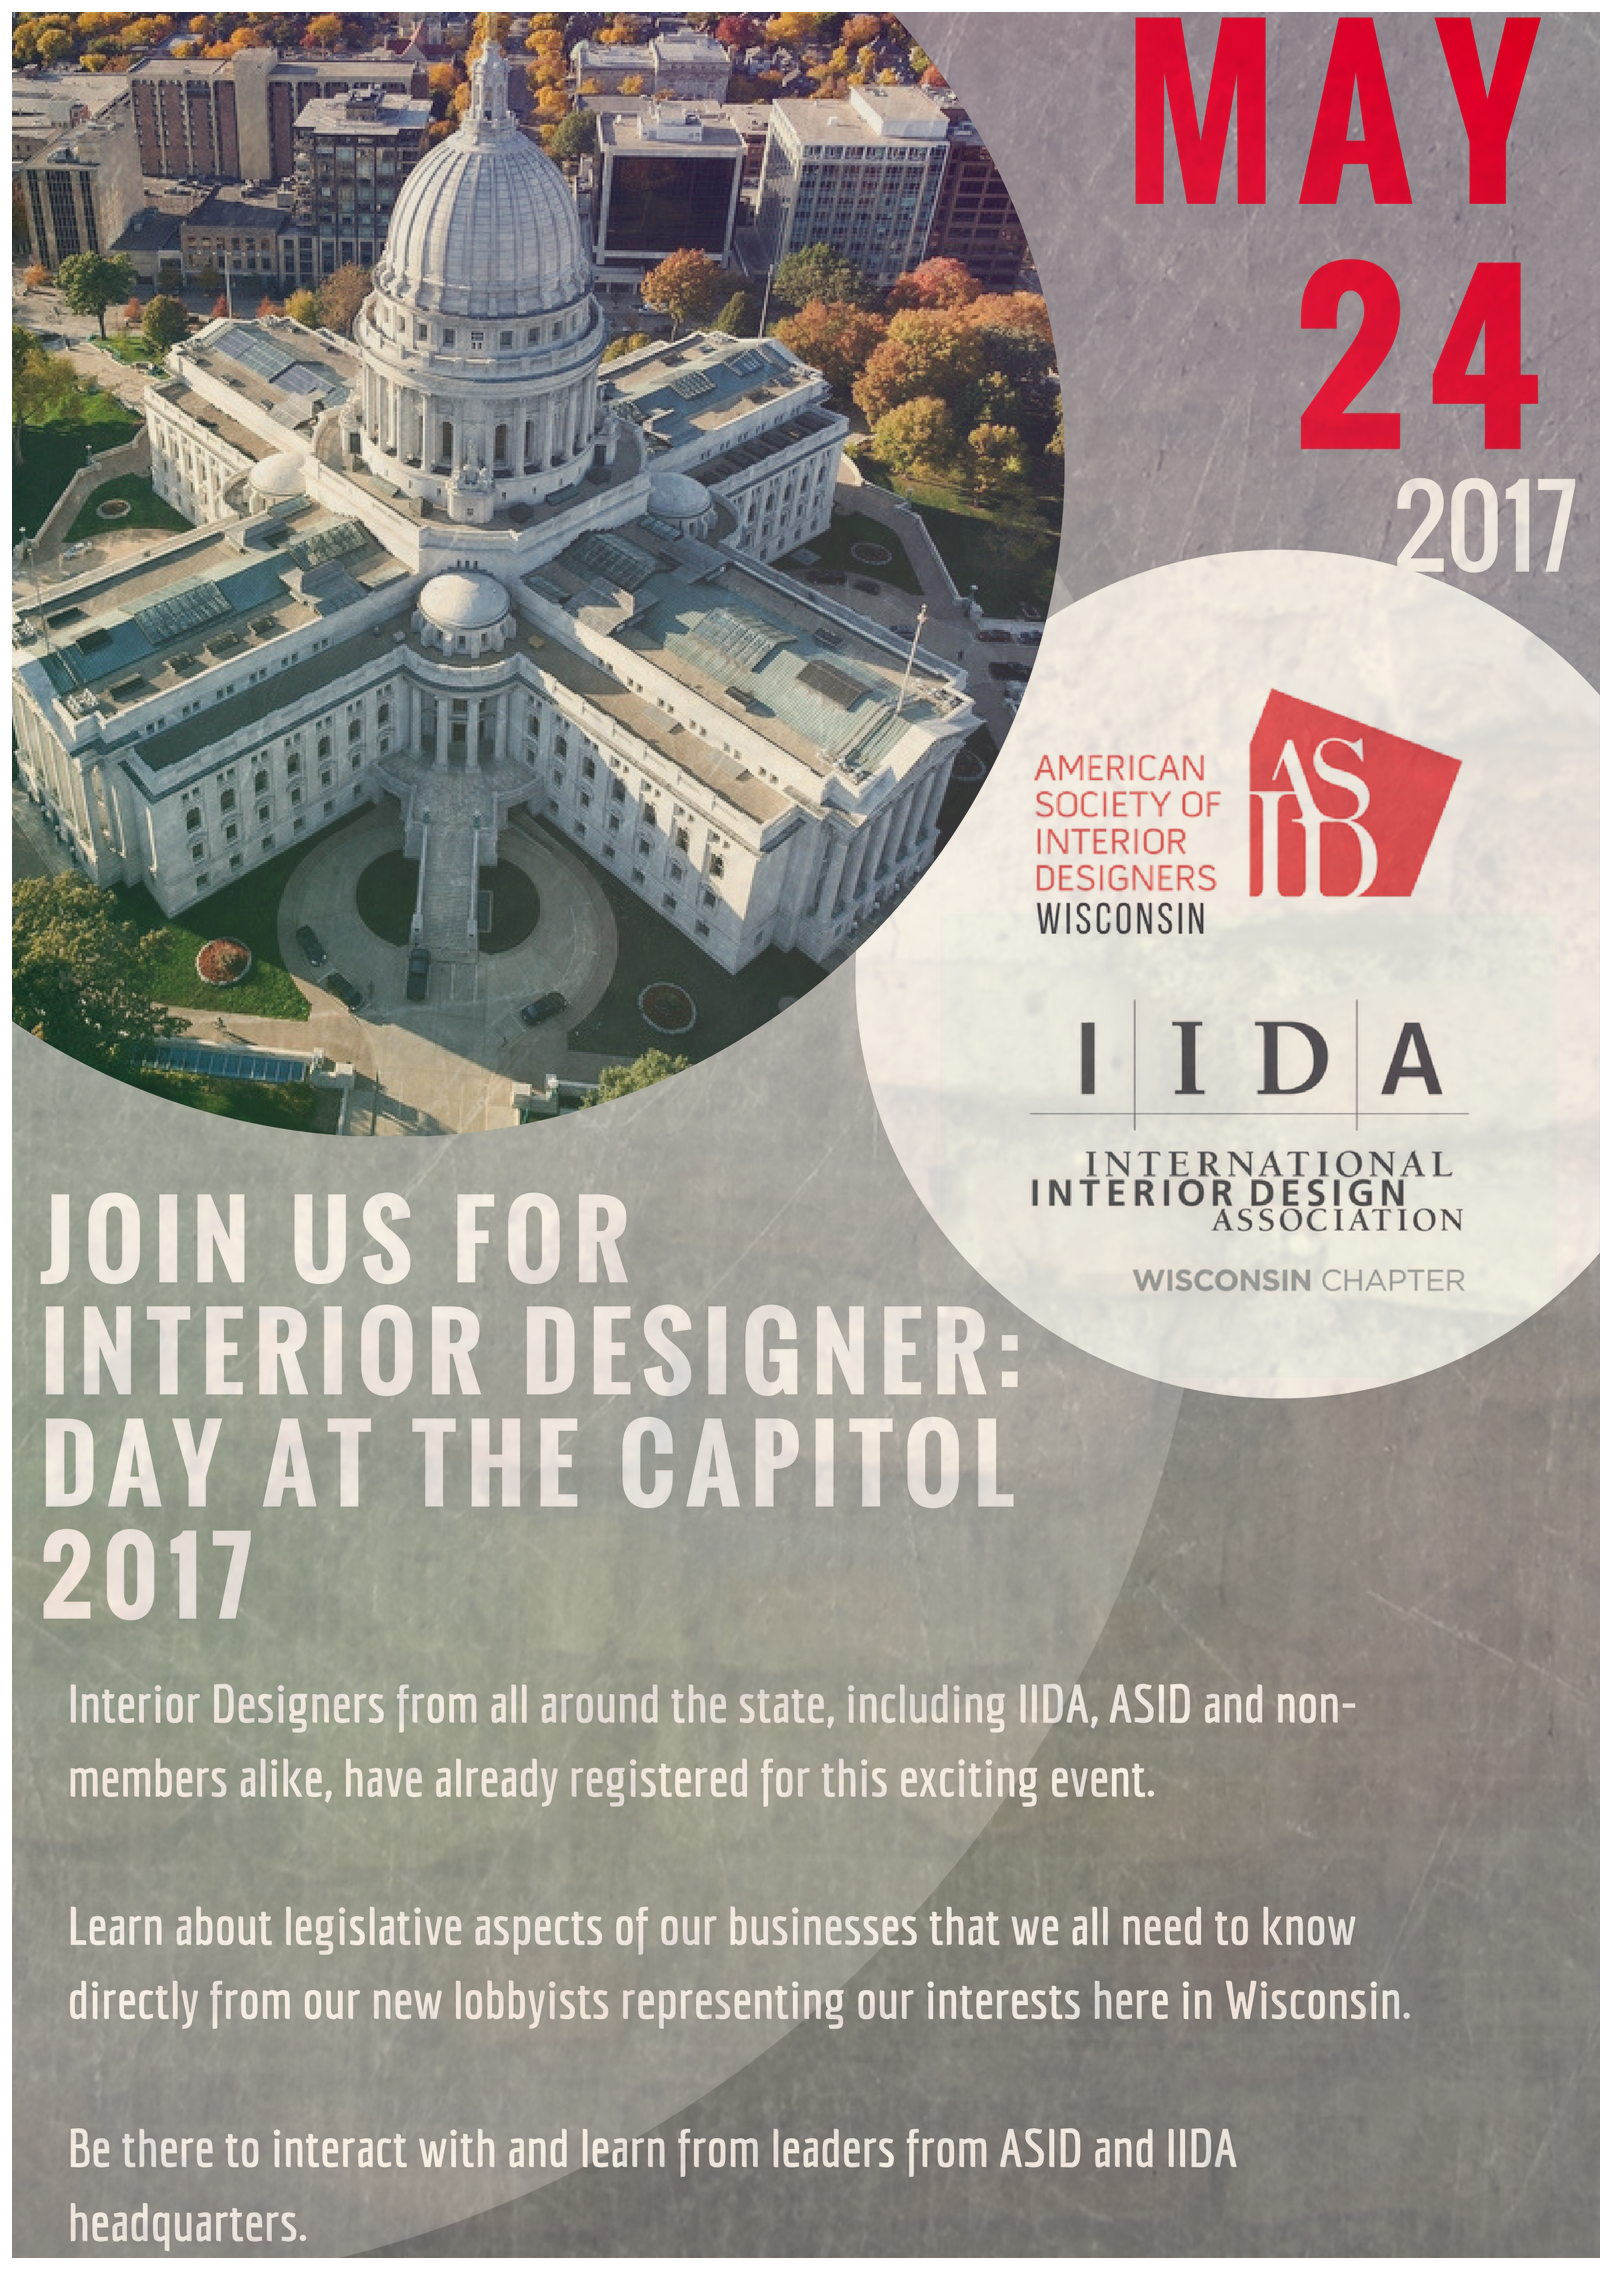 Join Us For The Interior Designers Day At Capitol 2017 Where We Will Have A Legislative Panel Discussion With ASID And IIDA National Chapter